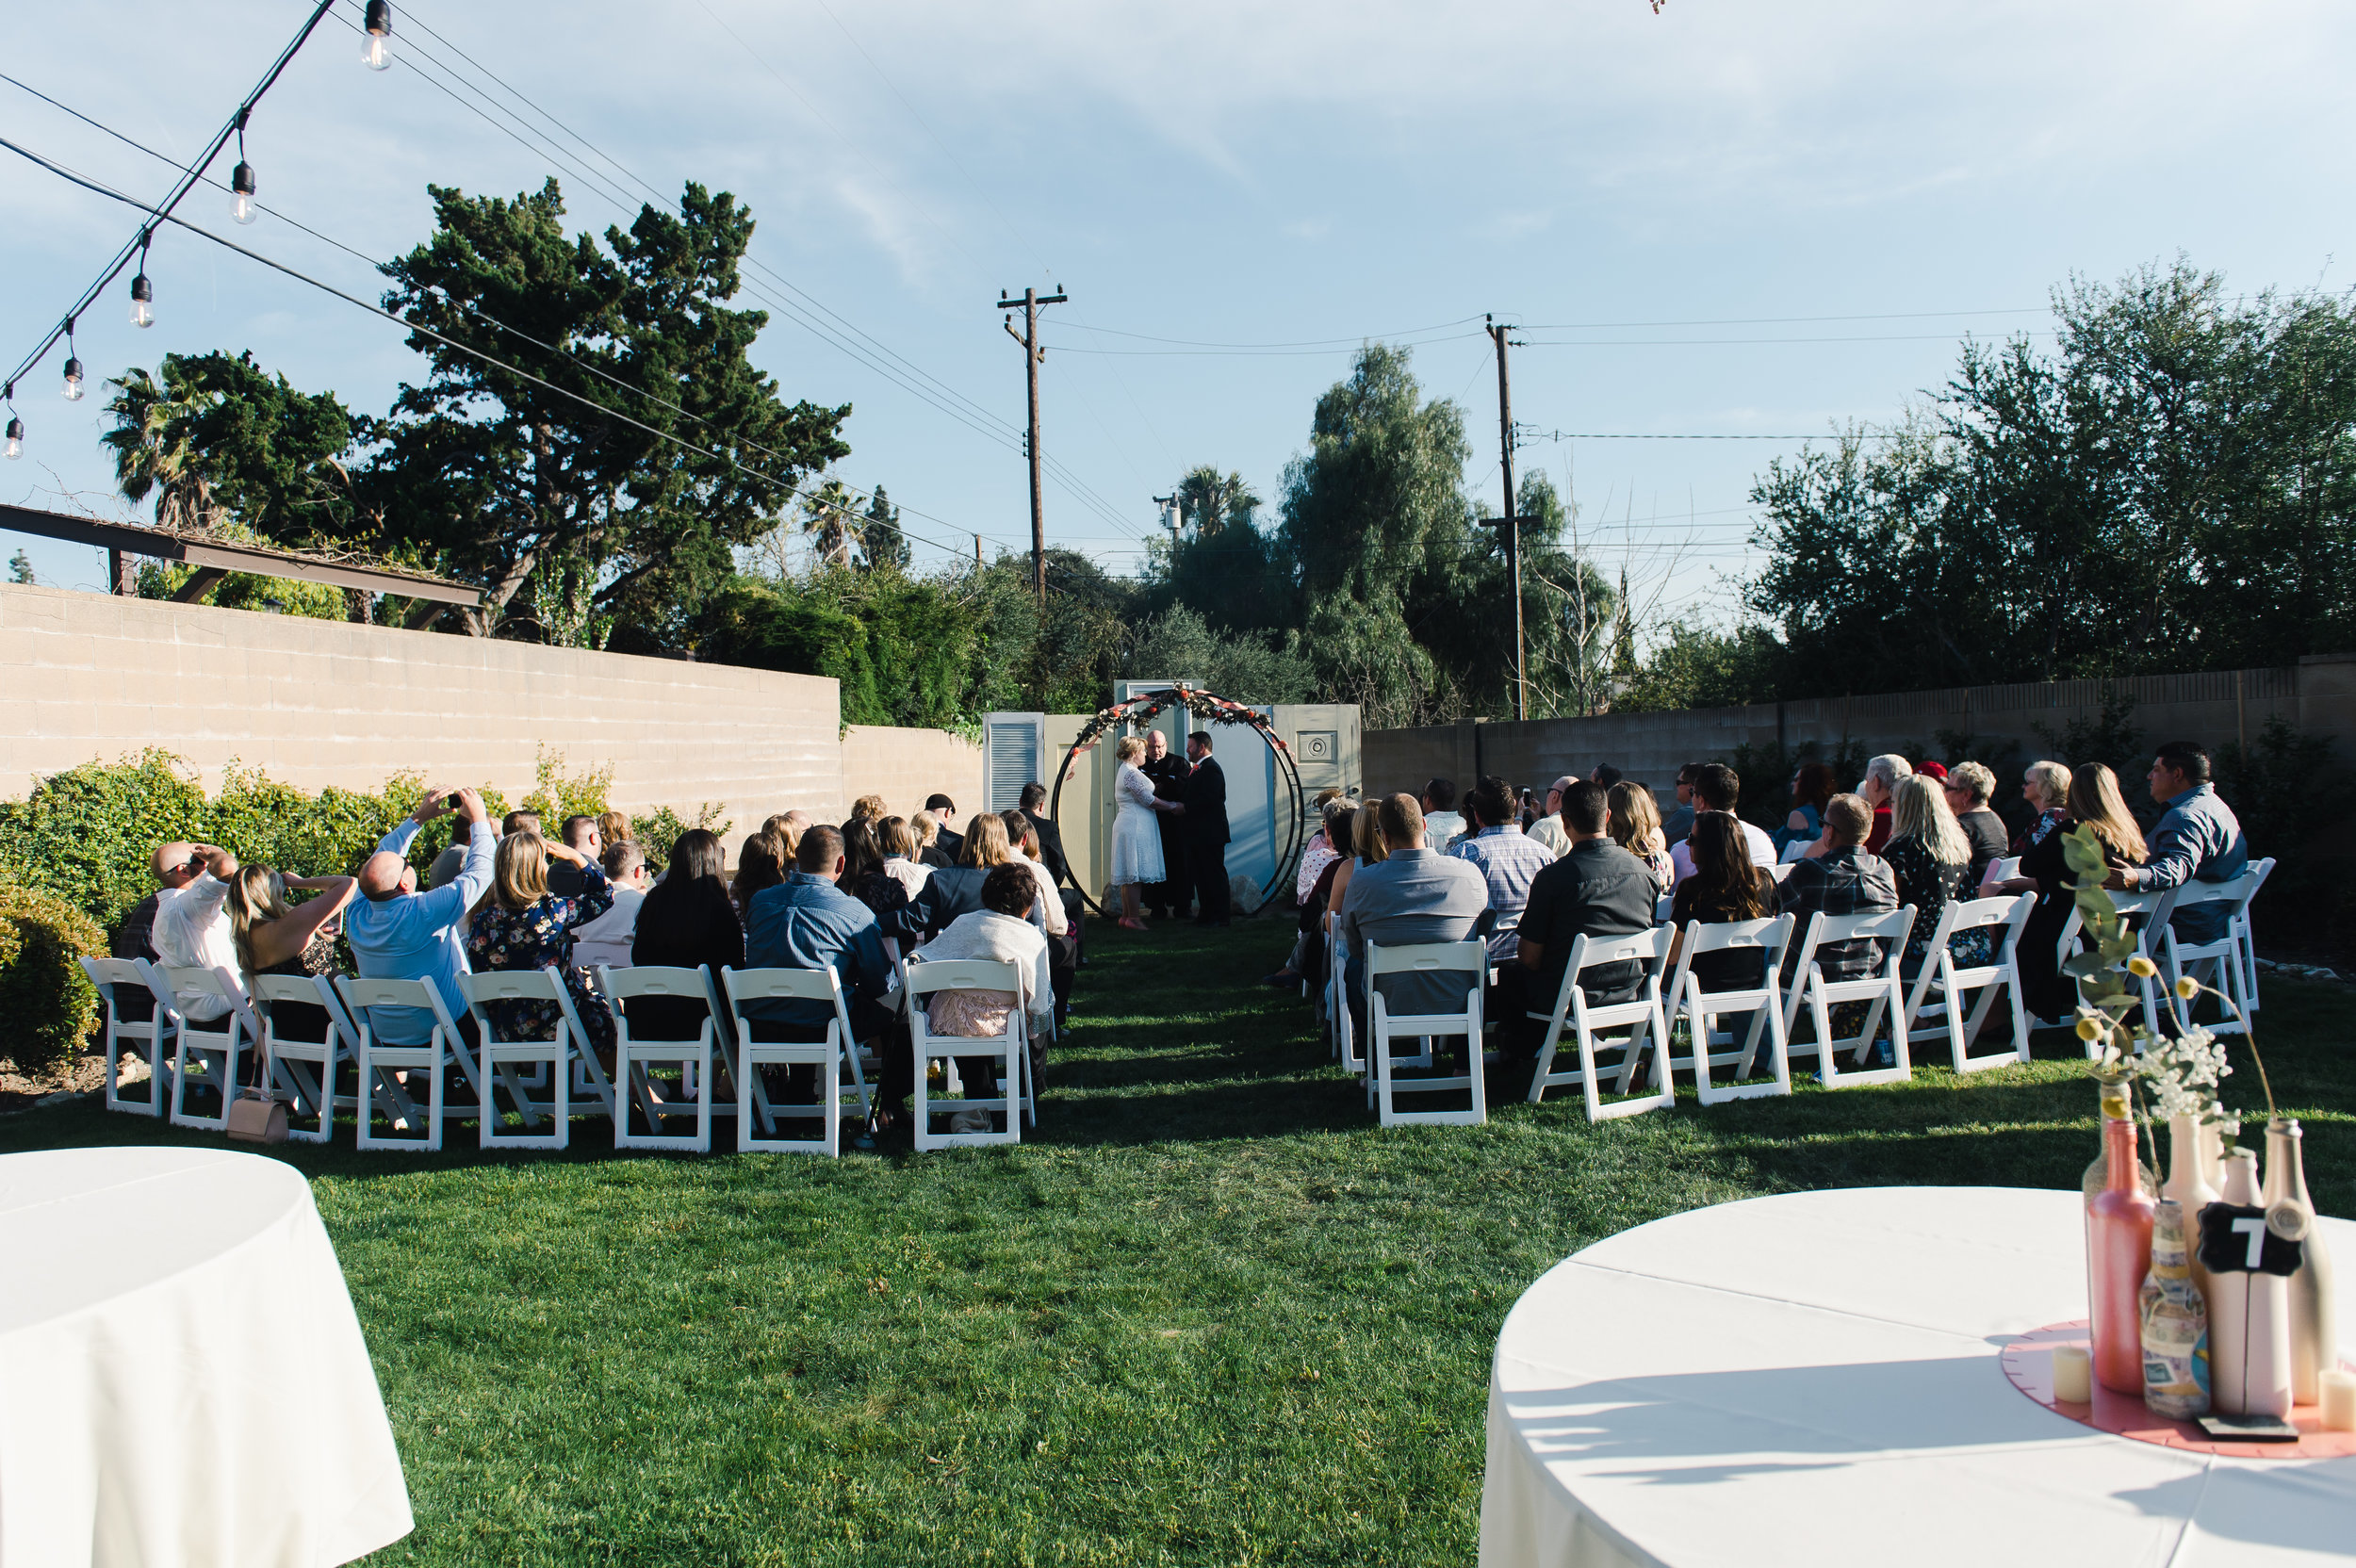 27claremontbackyardgardengardenweddingpictures.jpg